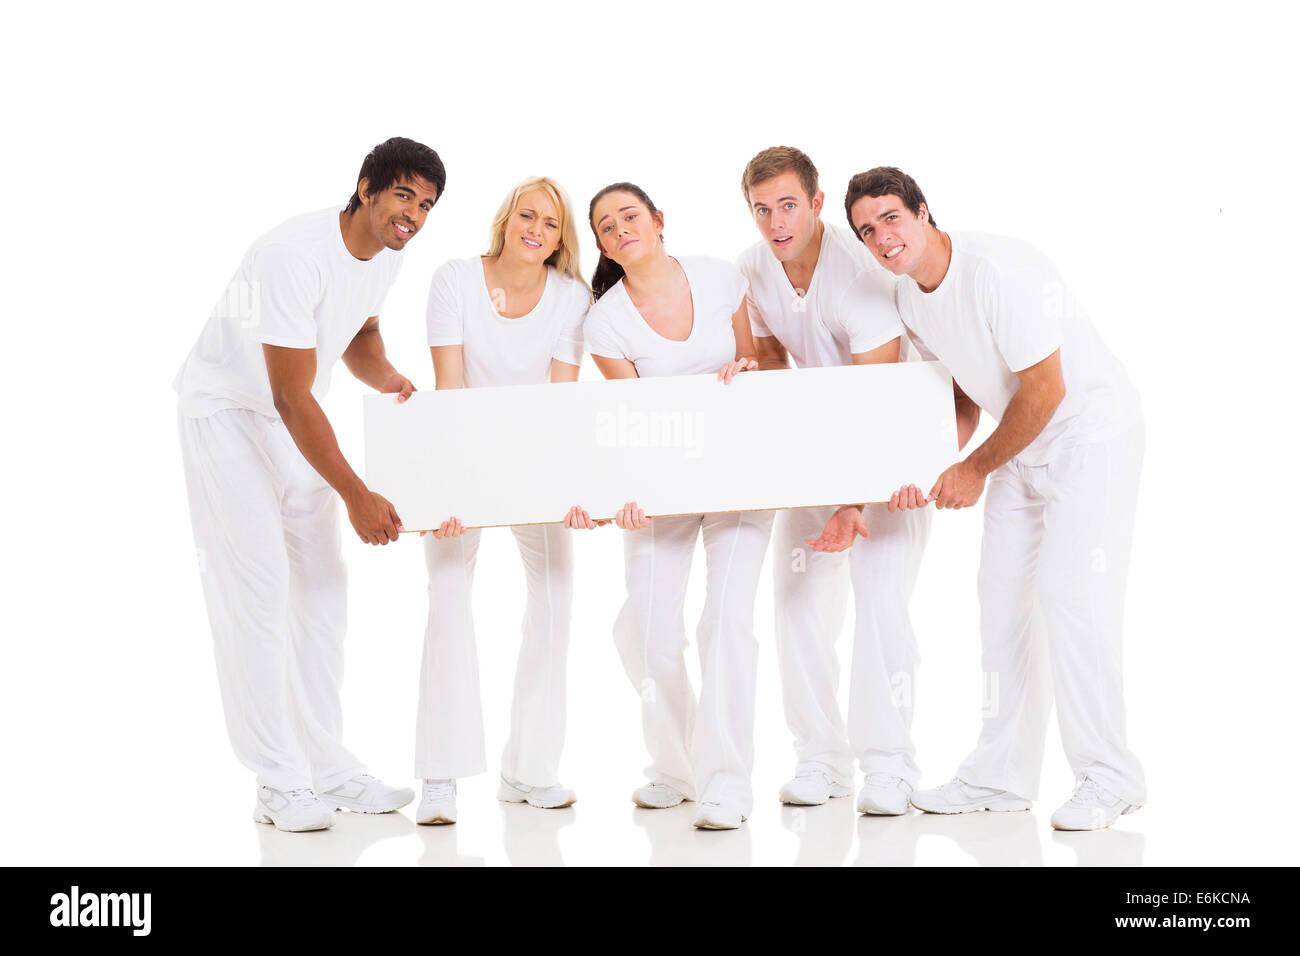 group of people holding heavy billboard isolated on white - Stock Image